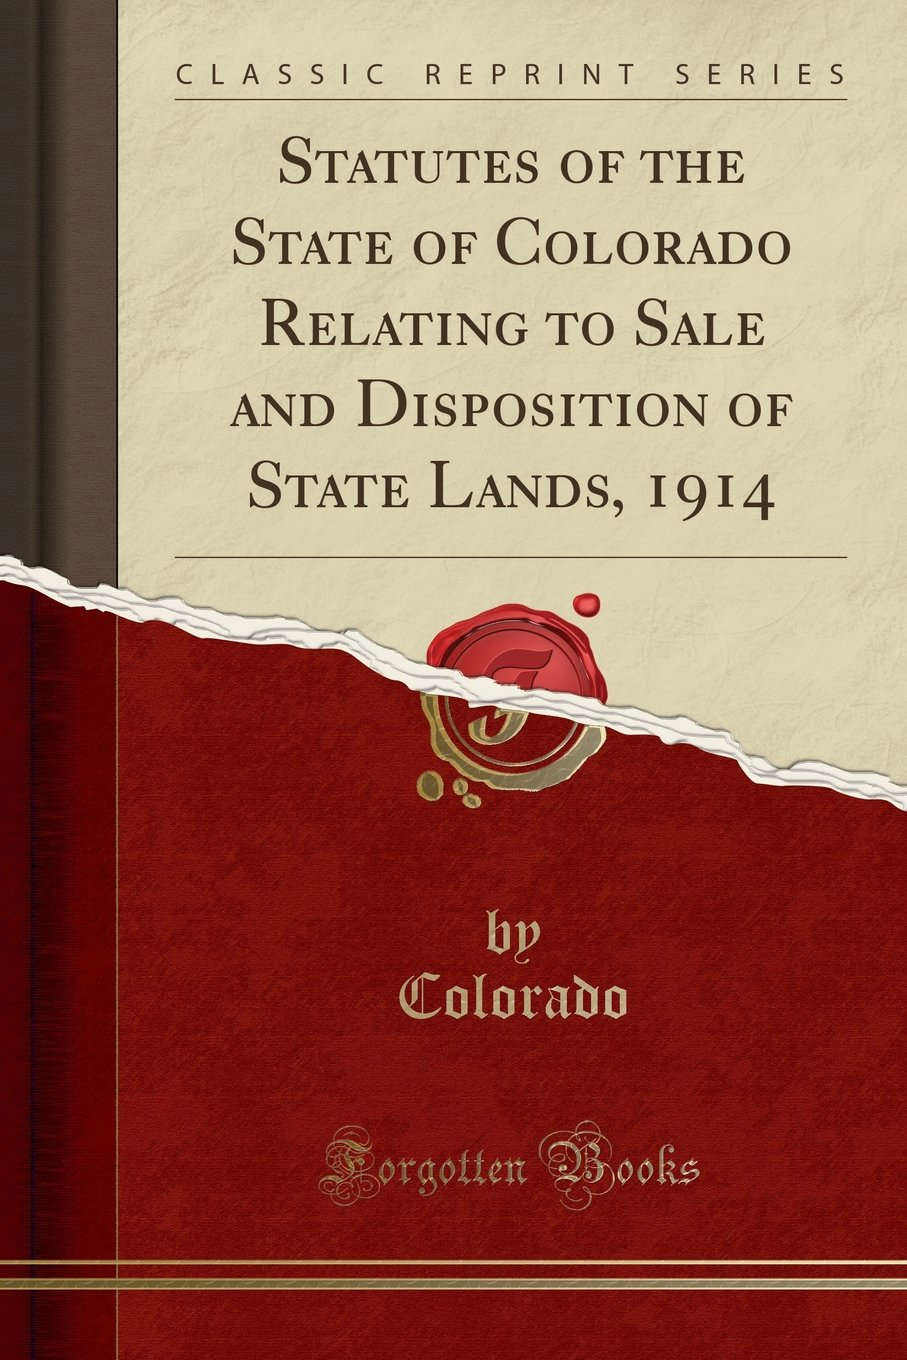 Statutes of the State of Colorado Relating to Sale and Disposition of State Lands, 1914 (Classic Reprint) PDF